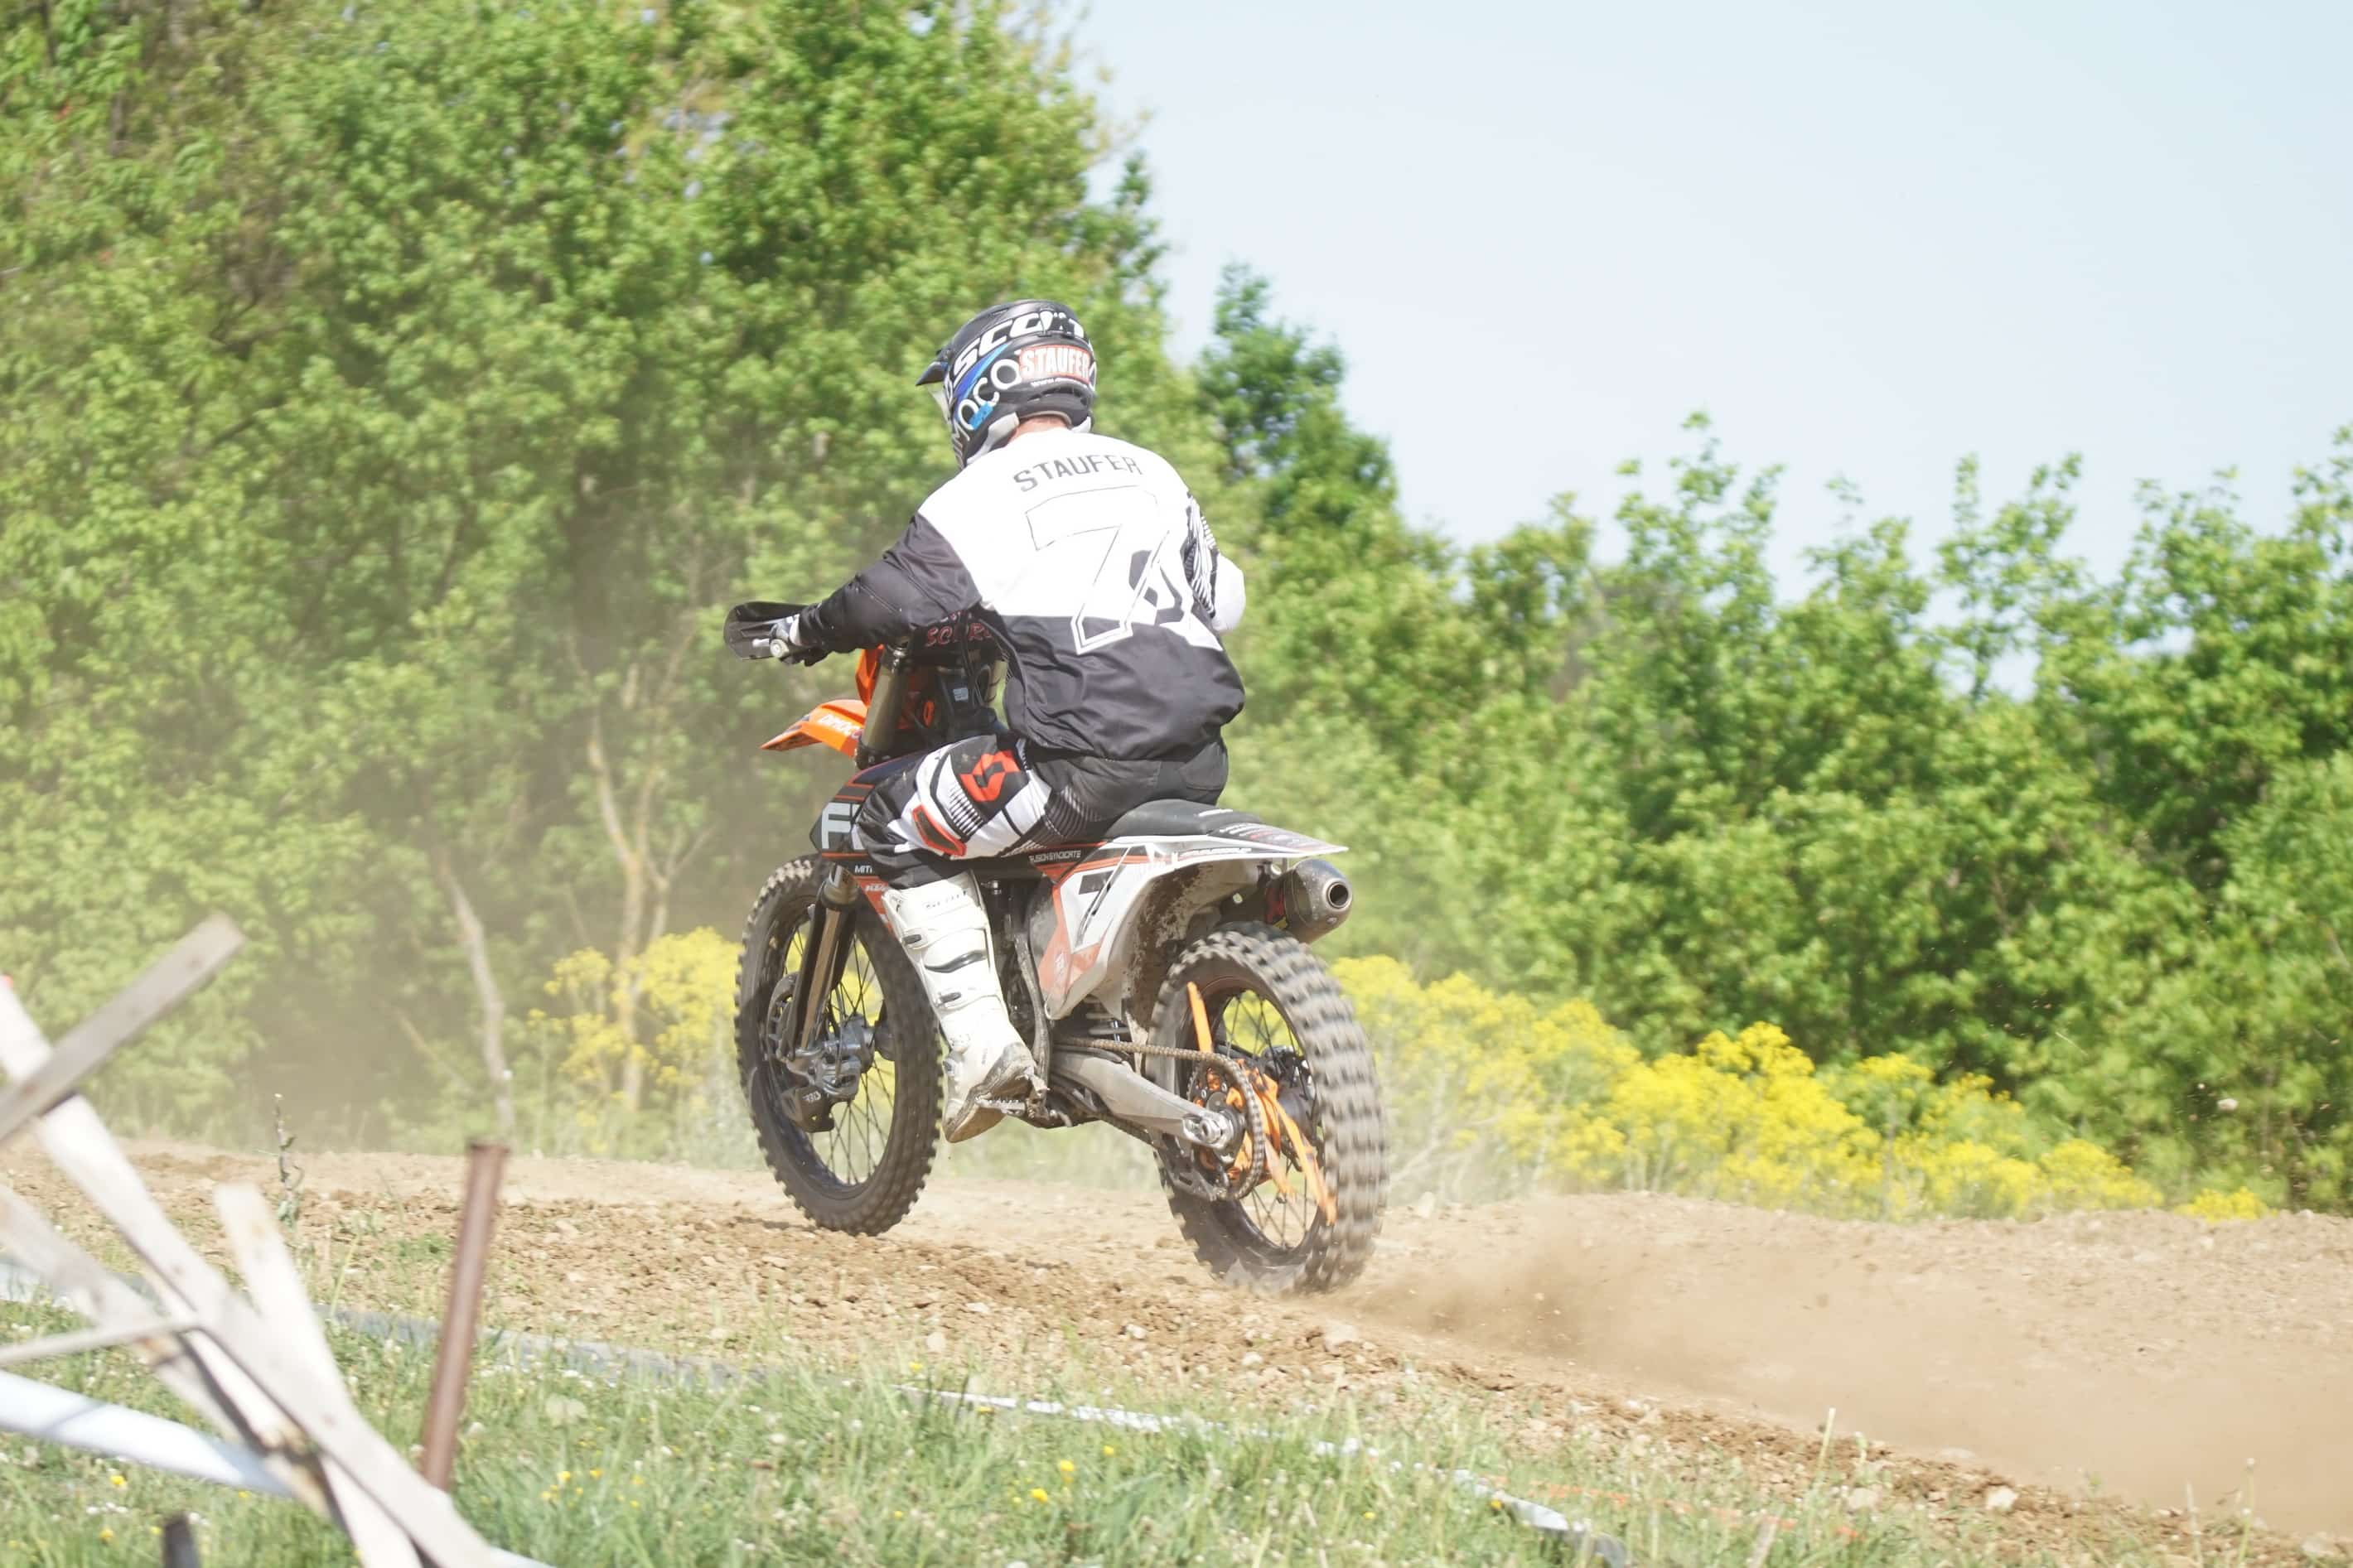 DSC 827_Moto Cross Sittendorf Teil1 am 29.04.2018